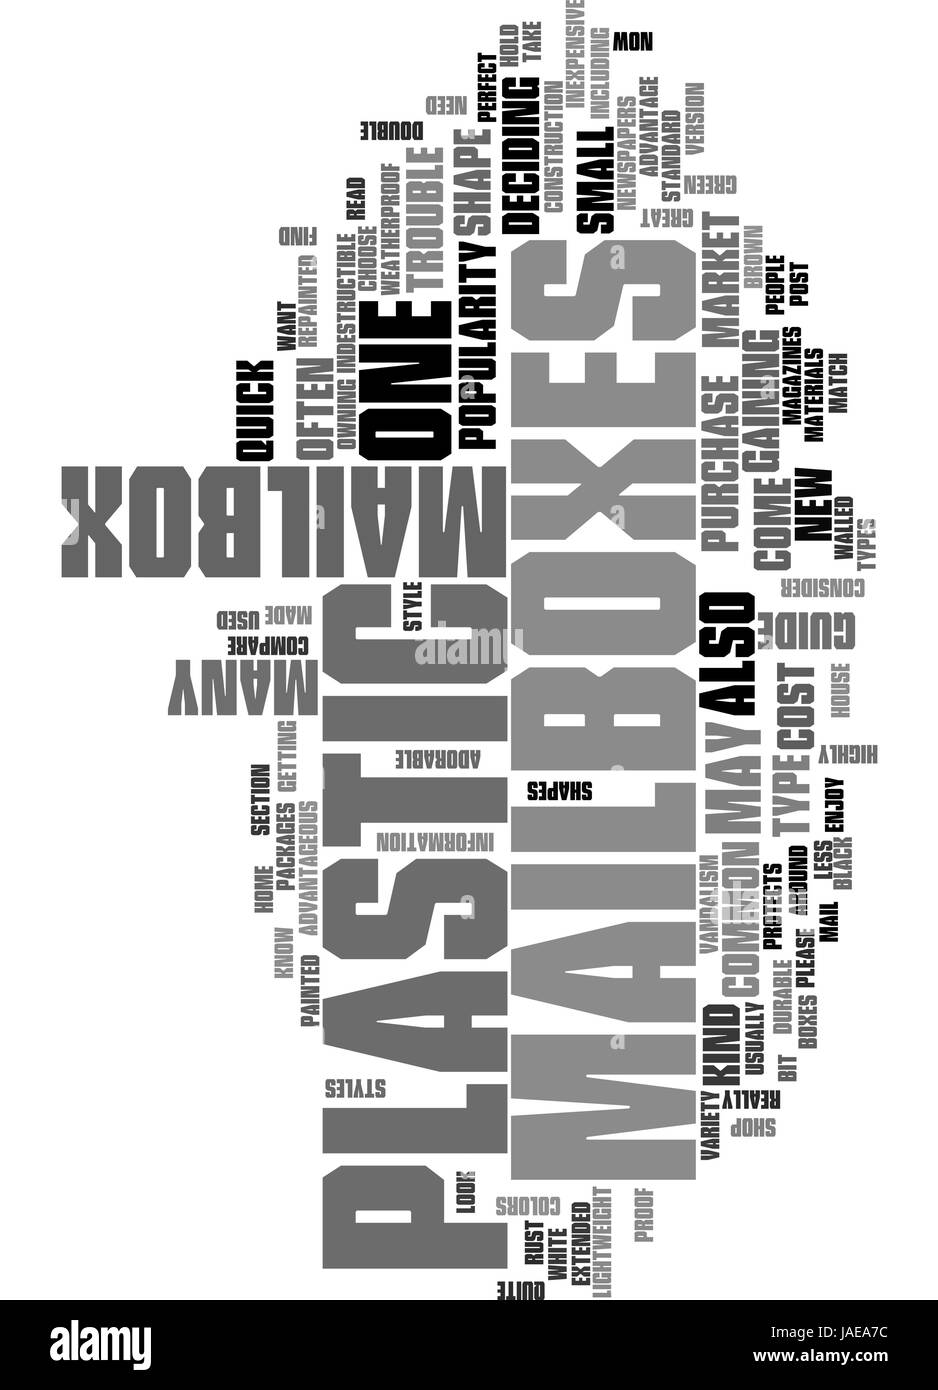 A QUICK GUIDE TO PLASTIC MAILBOXES TEXT WORD CLOUD CONCEPT Stock Vector